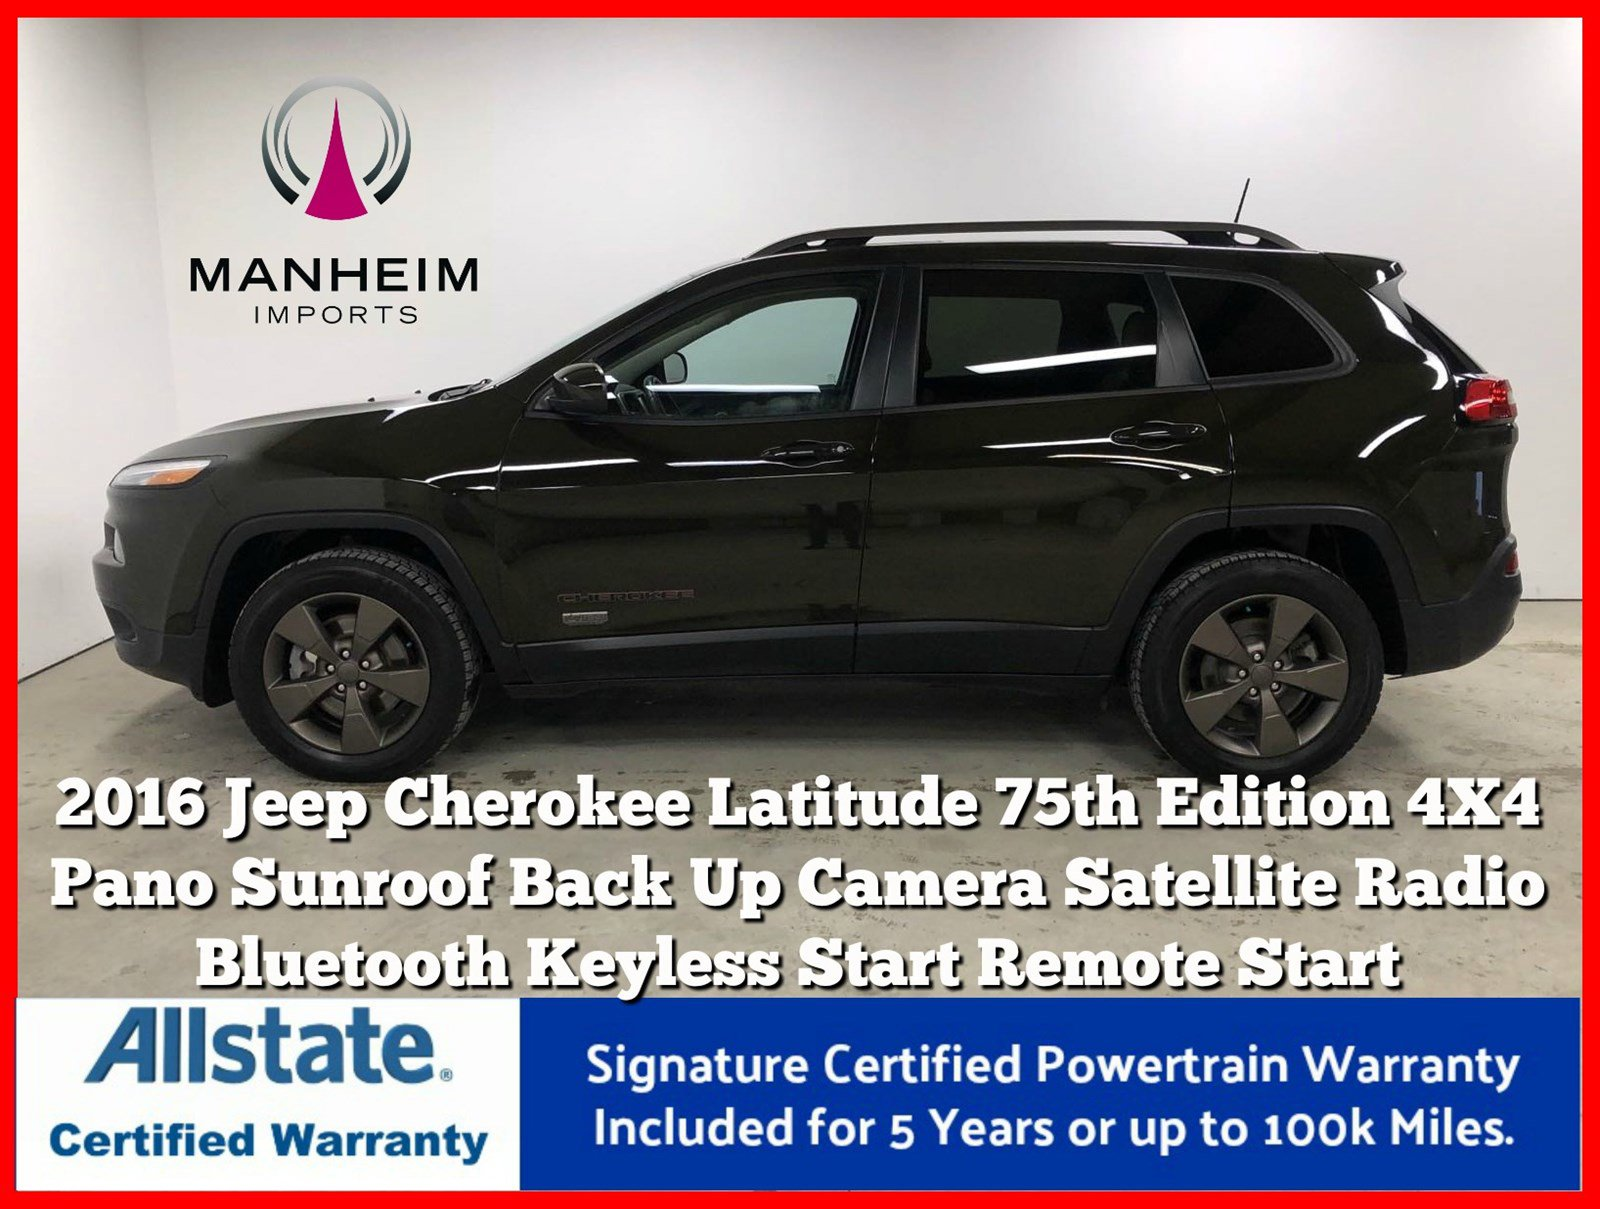 Pre-Owned 2016 Jeep Cherokee 4X4 75th Anniversary